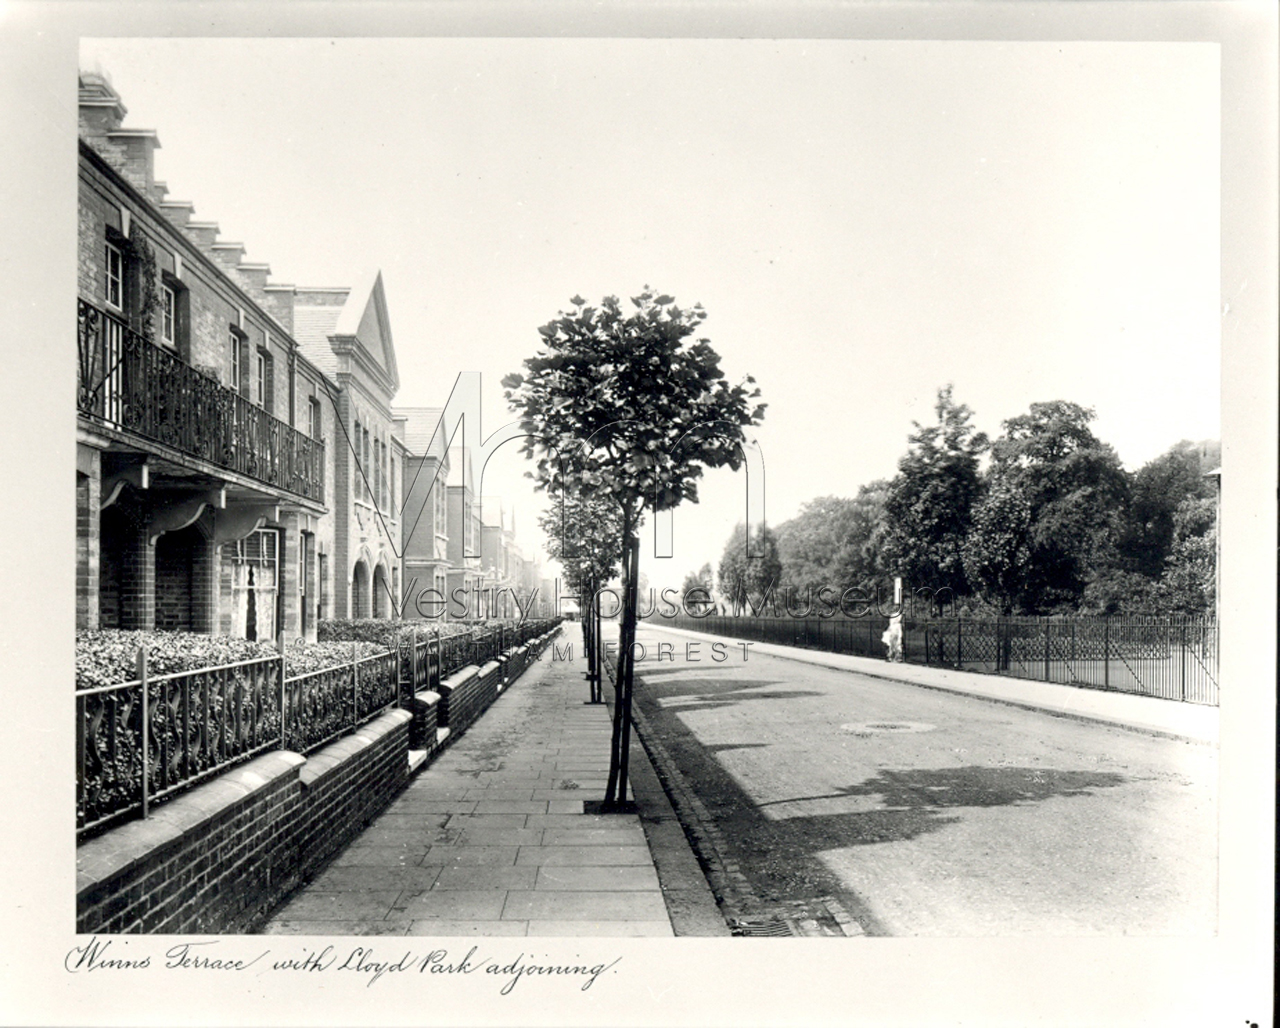 Winns Terrace with Lloyd Park adjoining